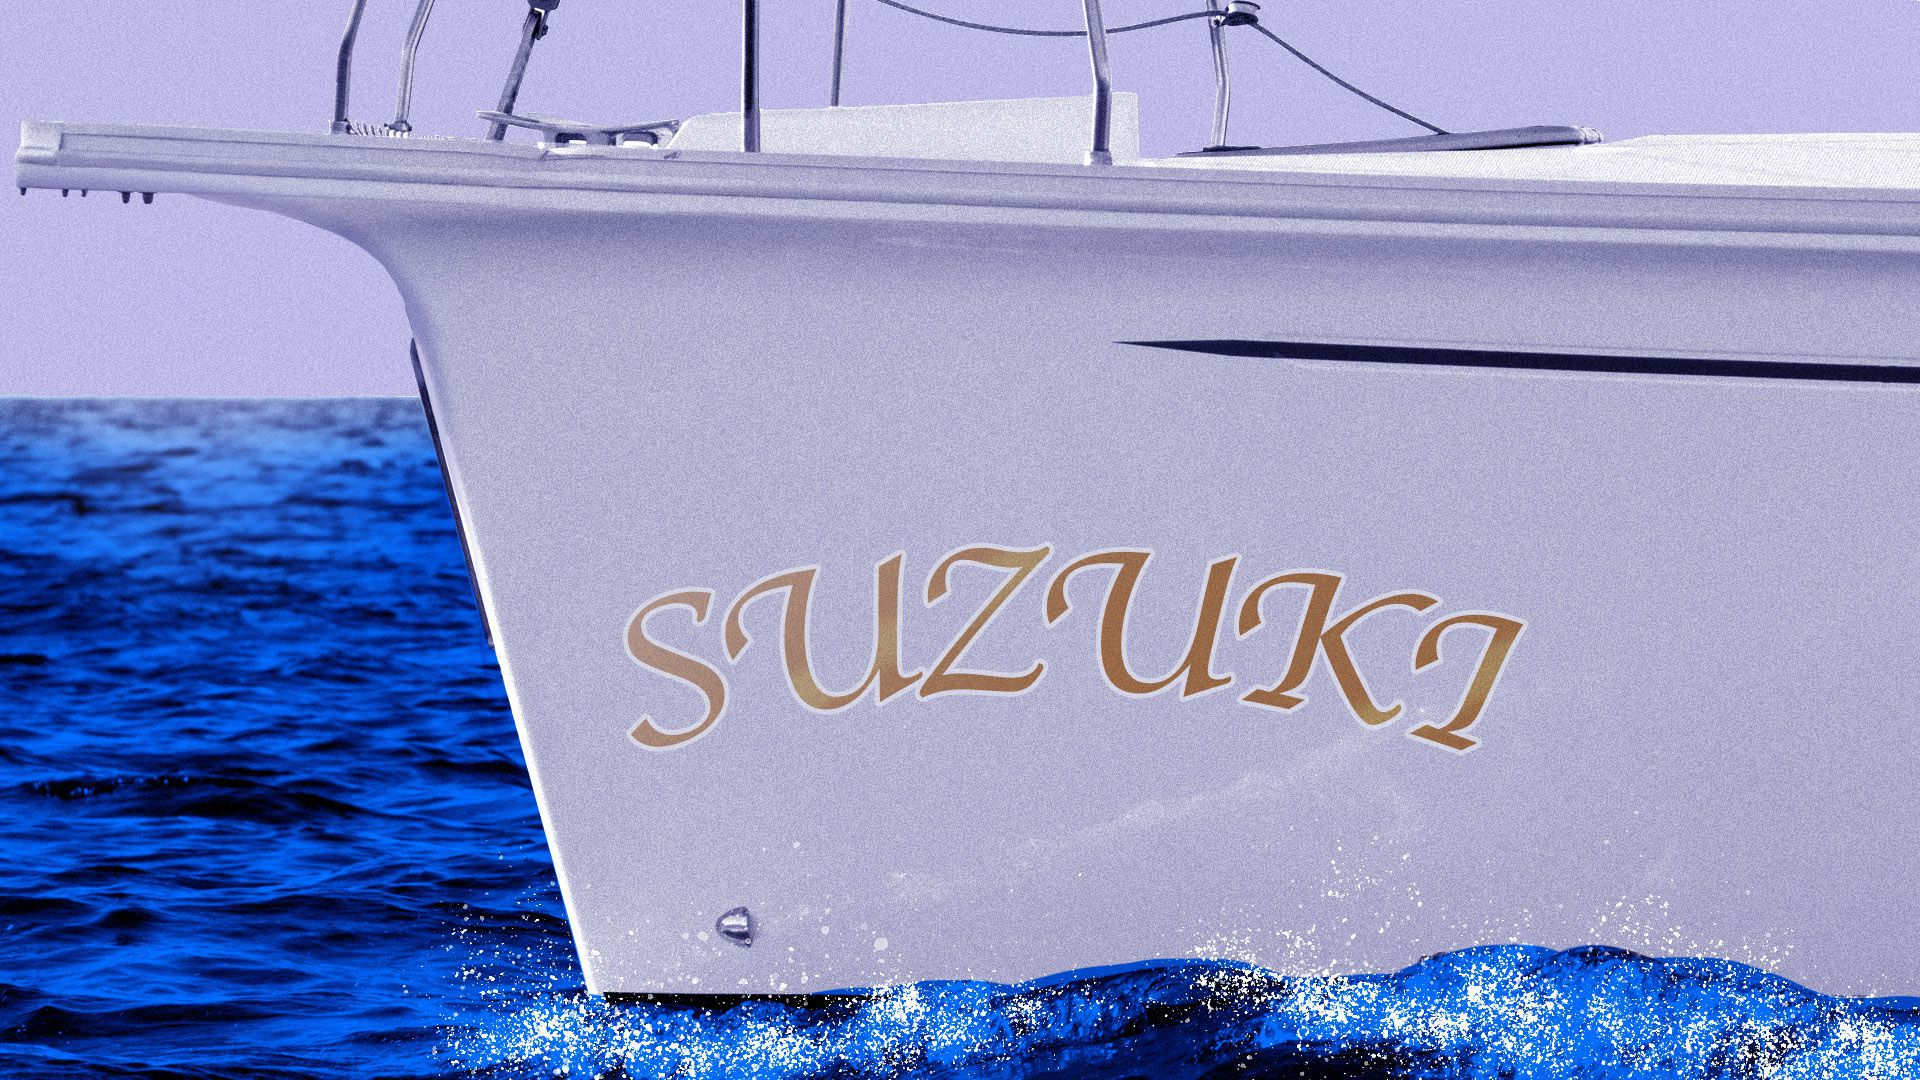 """Illustration of a boat with the word """"Suzuki"""" on it"""